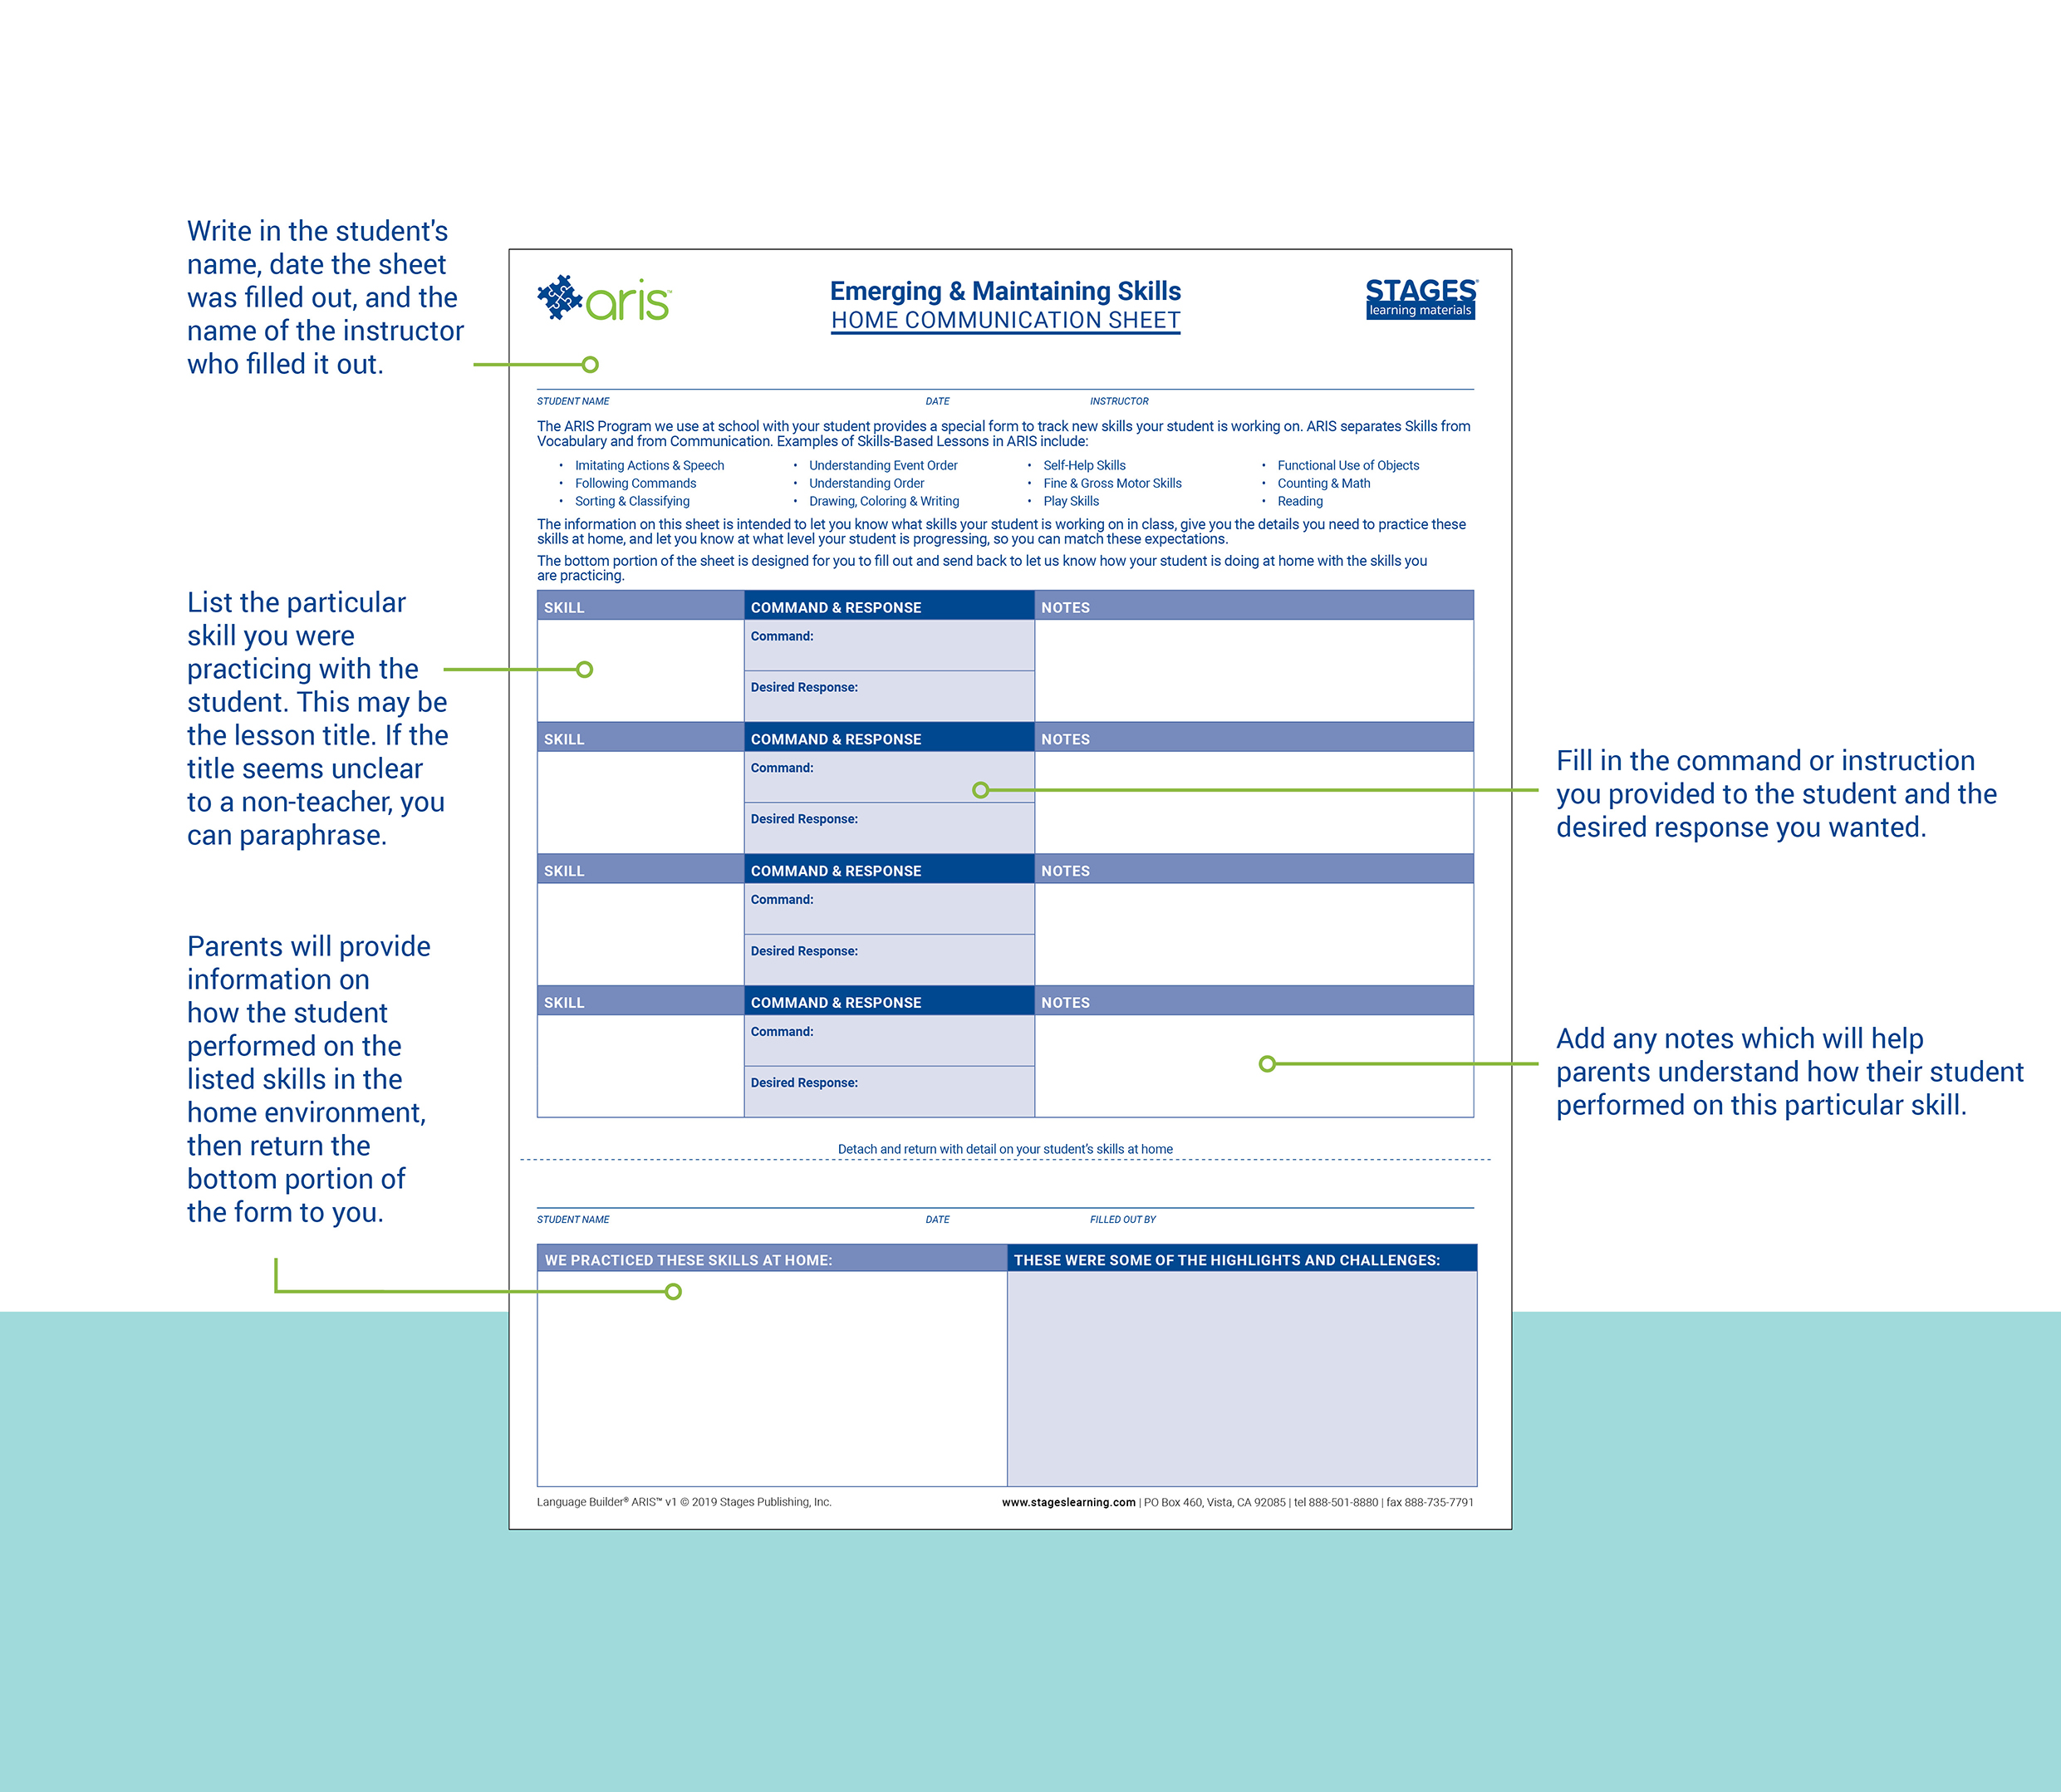 Large Picture of Emerging and Maintaining Skill Home Communication Sheet